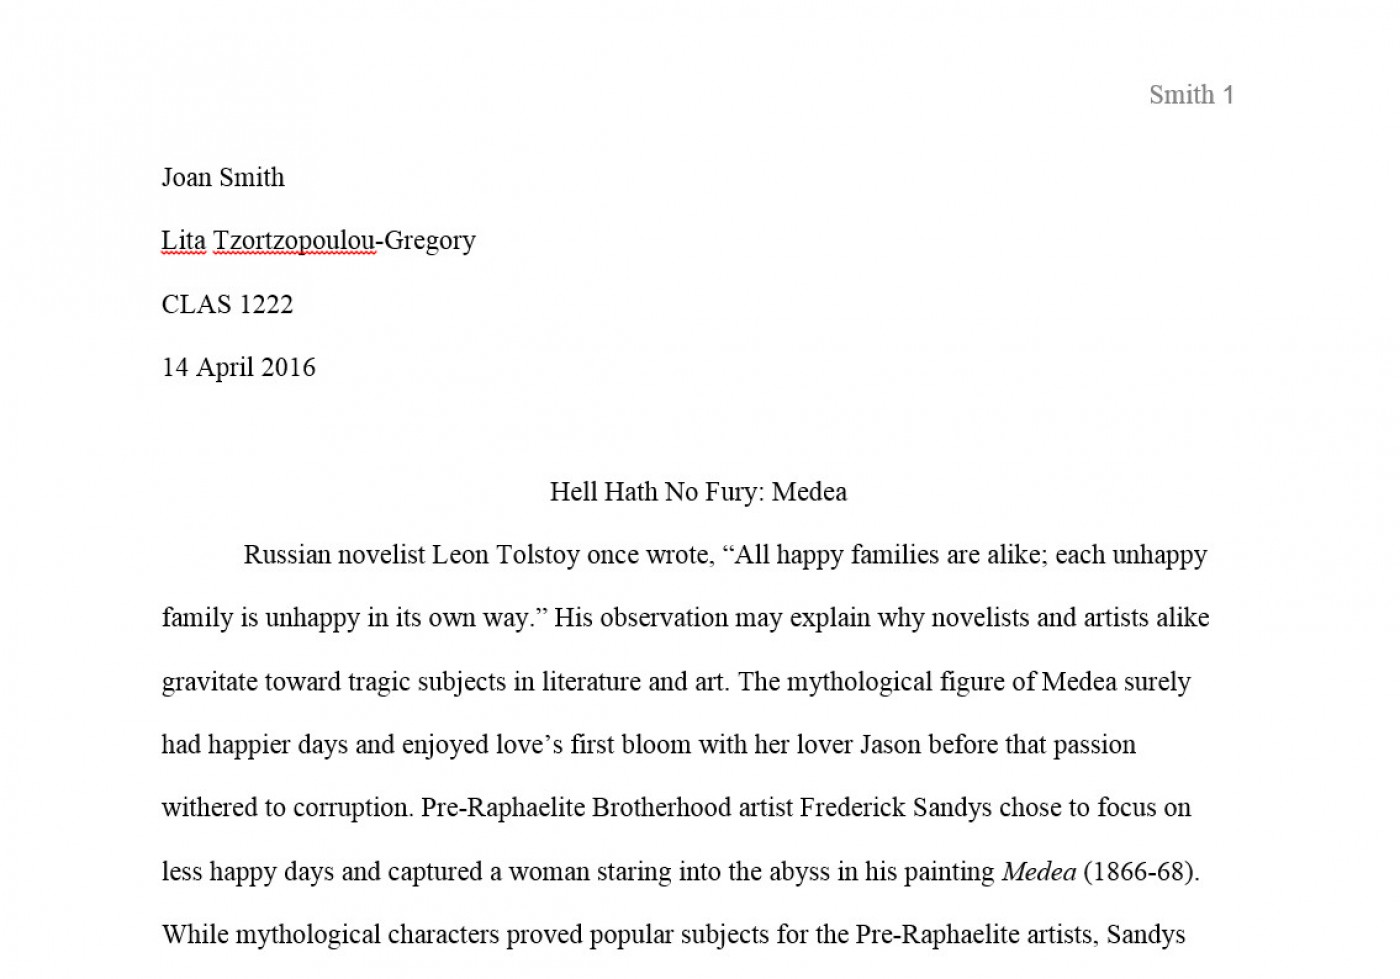 008 Mla Style Research Paper Format Example First ~ Museumlegs